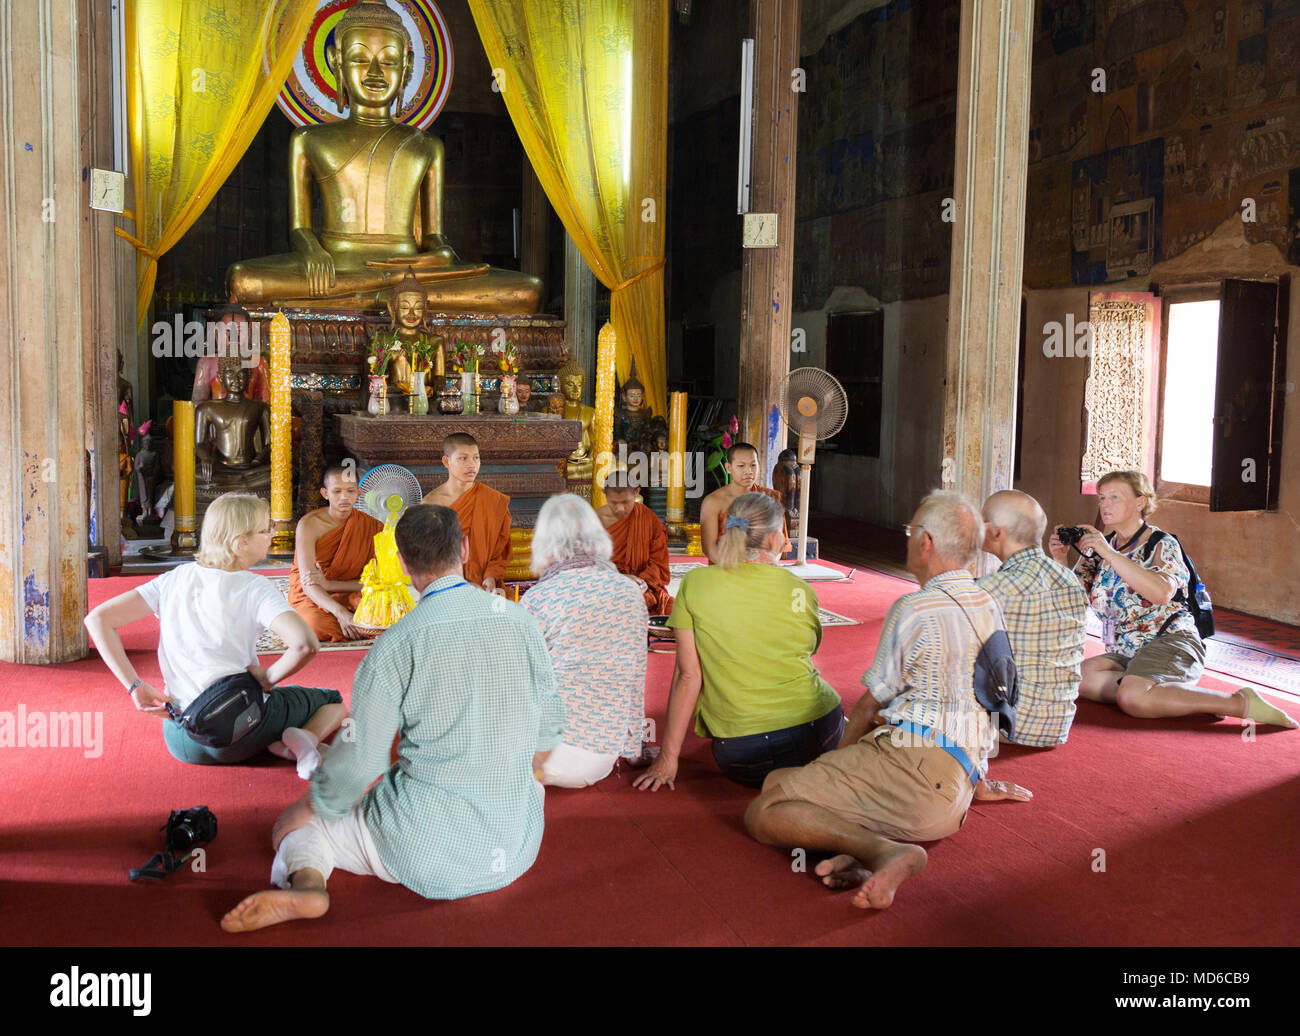 Cambodia tourists - Western tourists getting a blessing from Buddhist monks in a temple, Siem Reap, Cambodia Asia - Stock Image